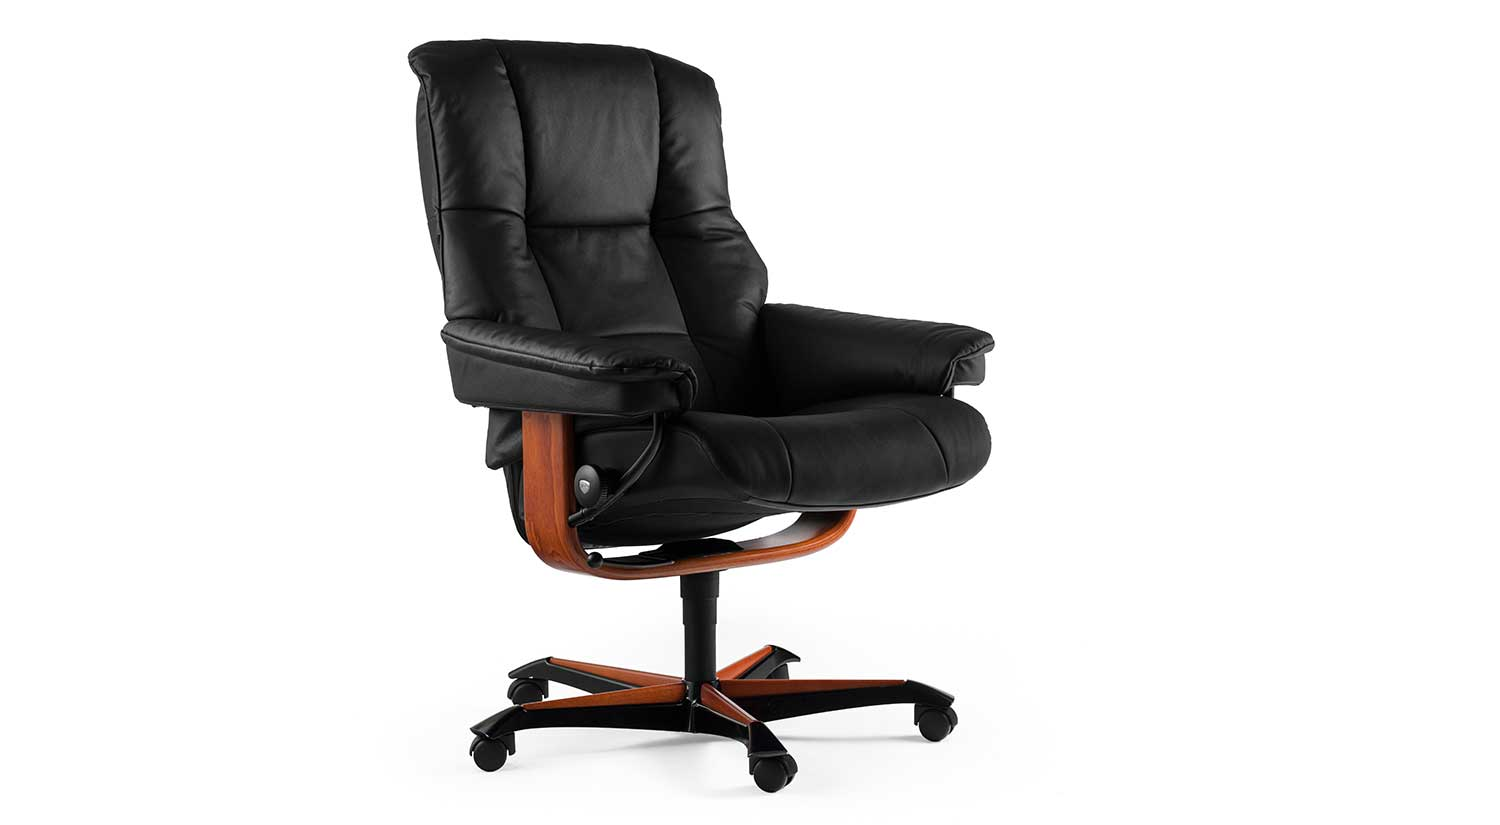 Circle Furniture Stressless Mayfair Office Chair